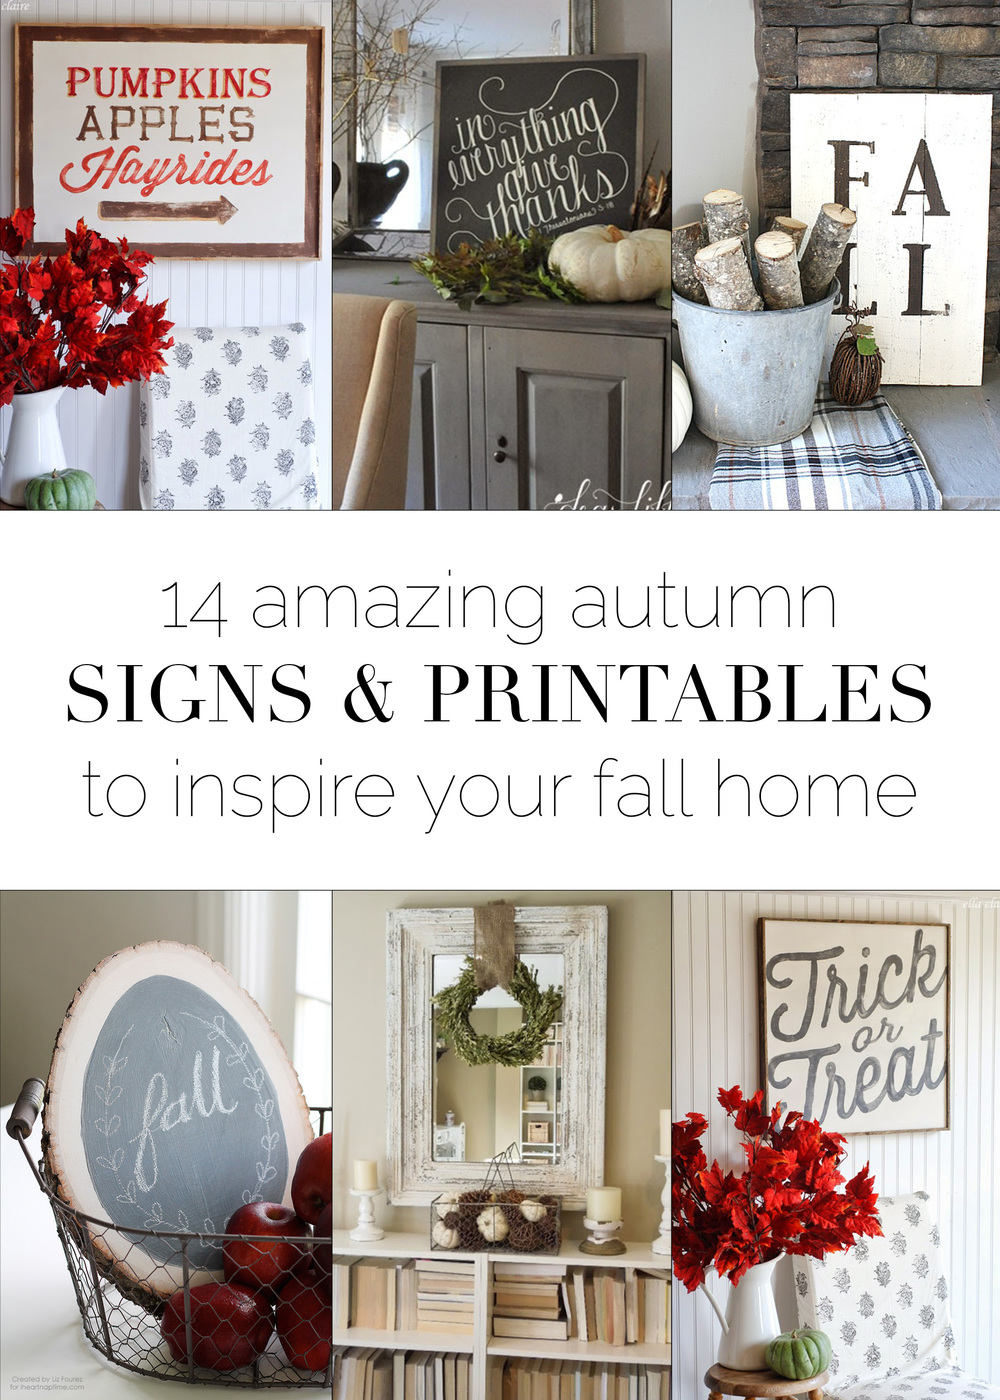 14 Amazing autumn signs & printables to inspire your fall home! | Boxwood Avenue